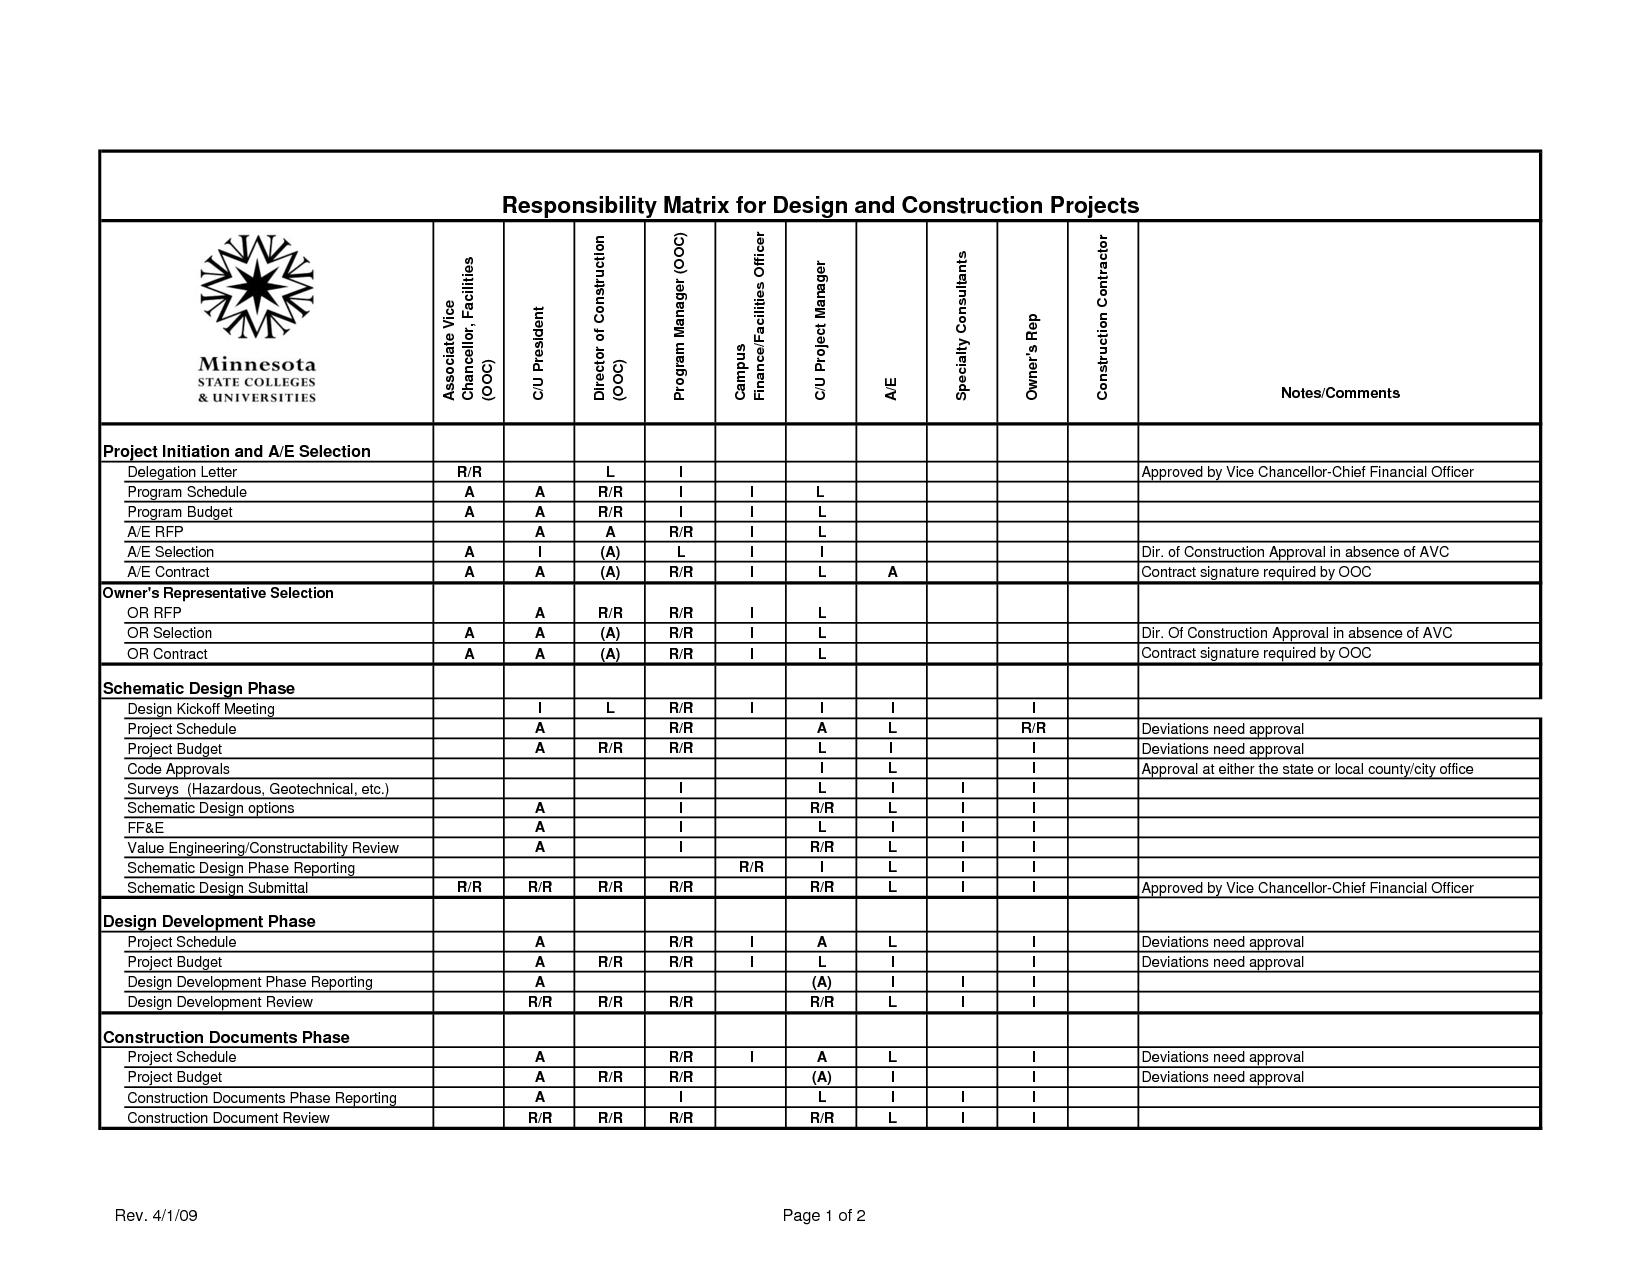 Table Of Responsibilities Responsibility Matrix For